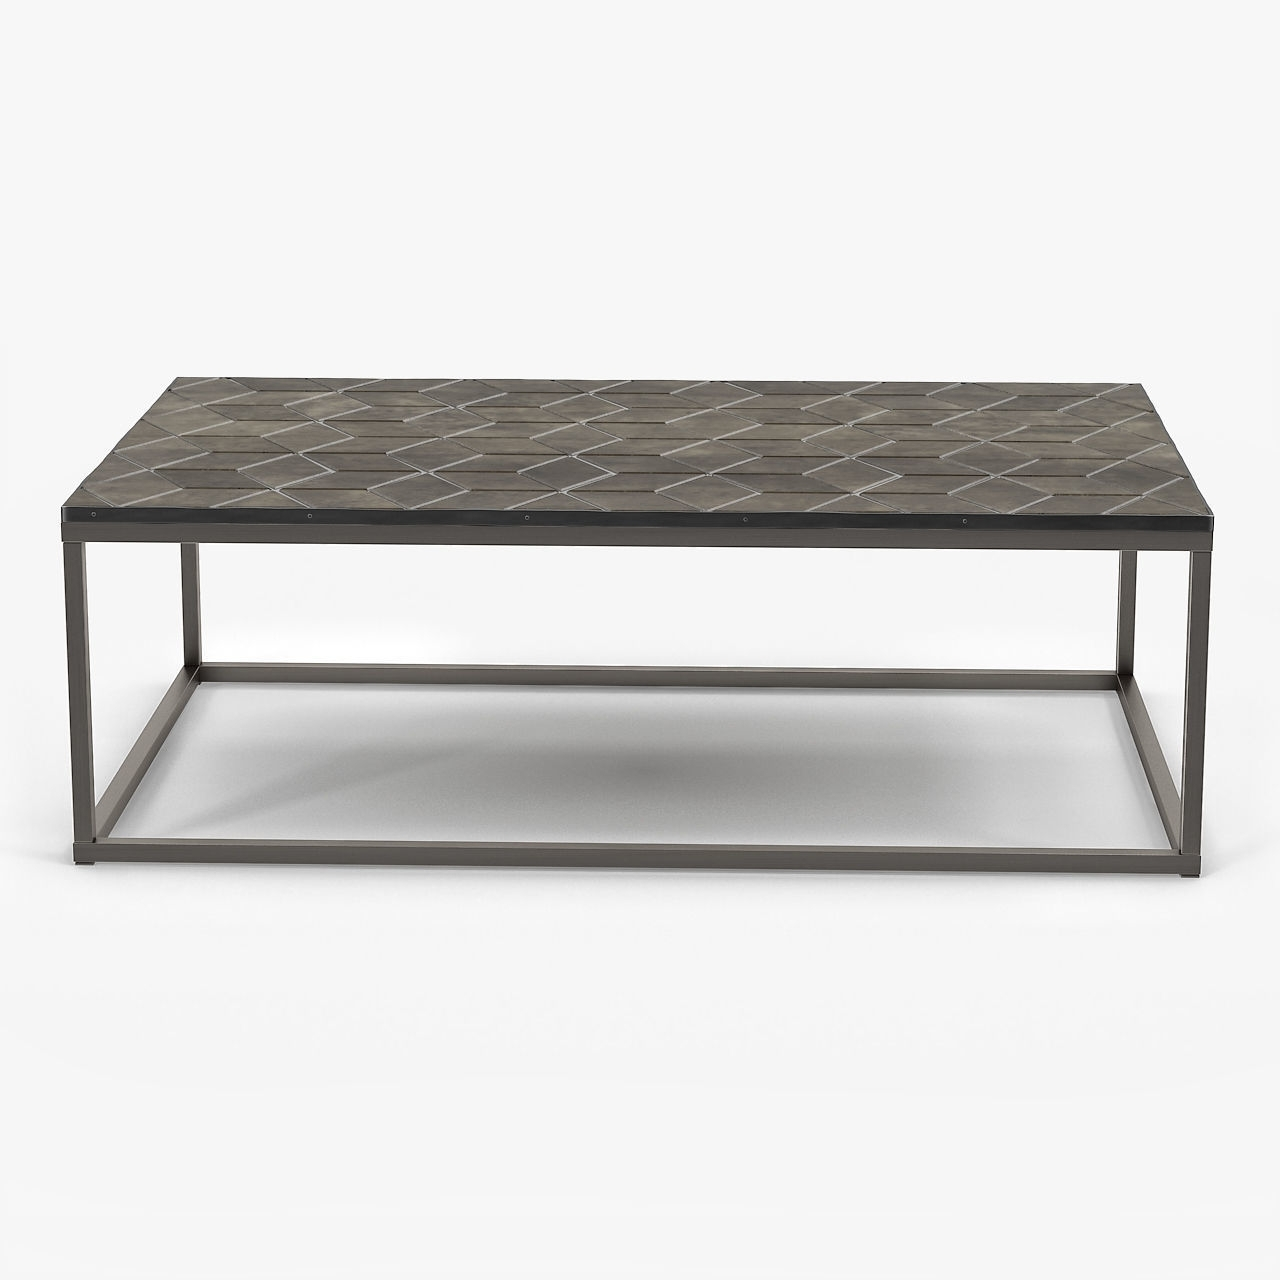 Amazing Parquet Coffee Table With Restoration Hardware Metall Inside Parquet Coffee Tables (View 16 of 30)